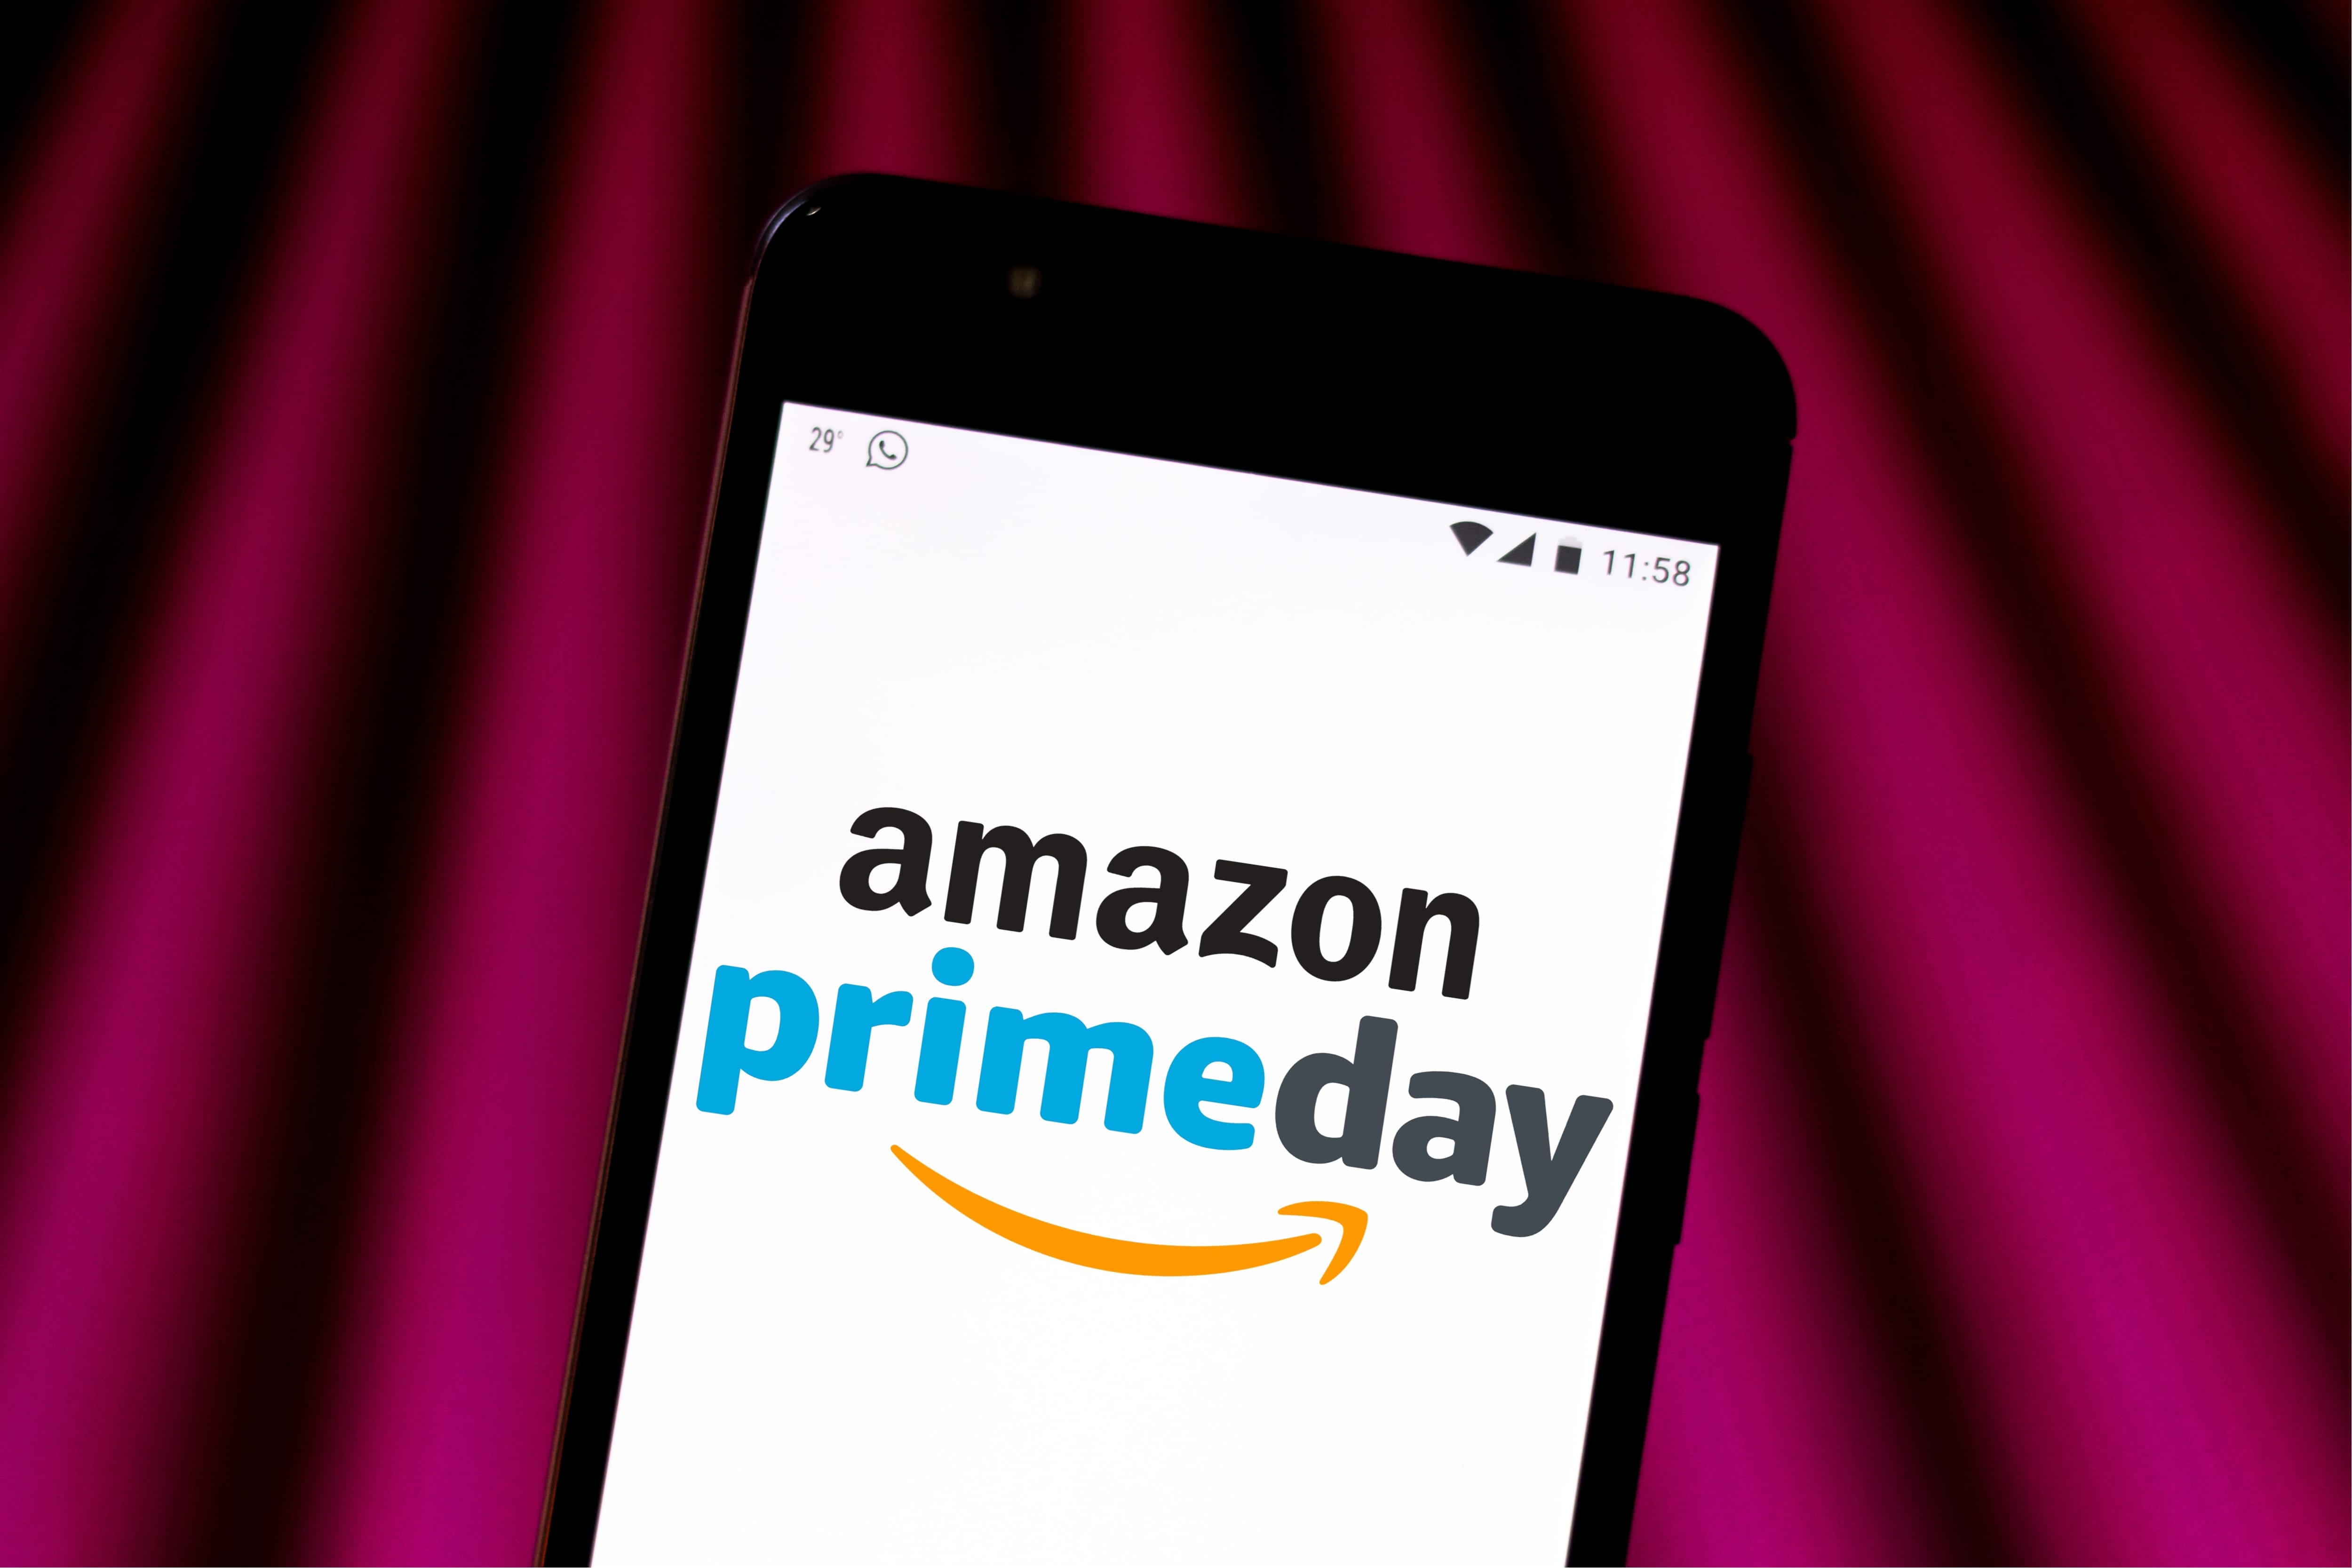 BoA: Amazon's Prime Day Boosted Retail Sales In July